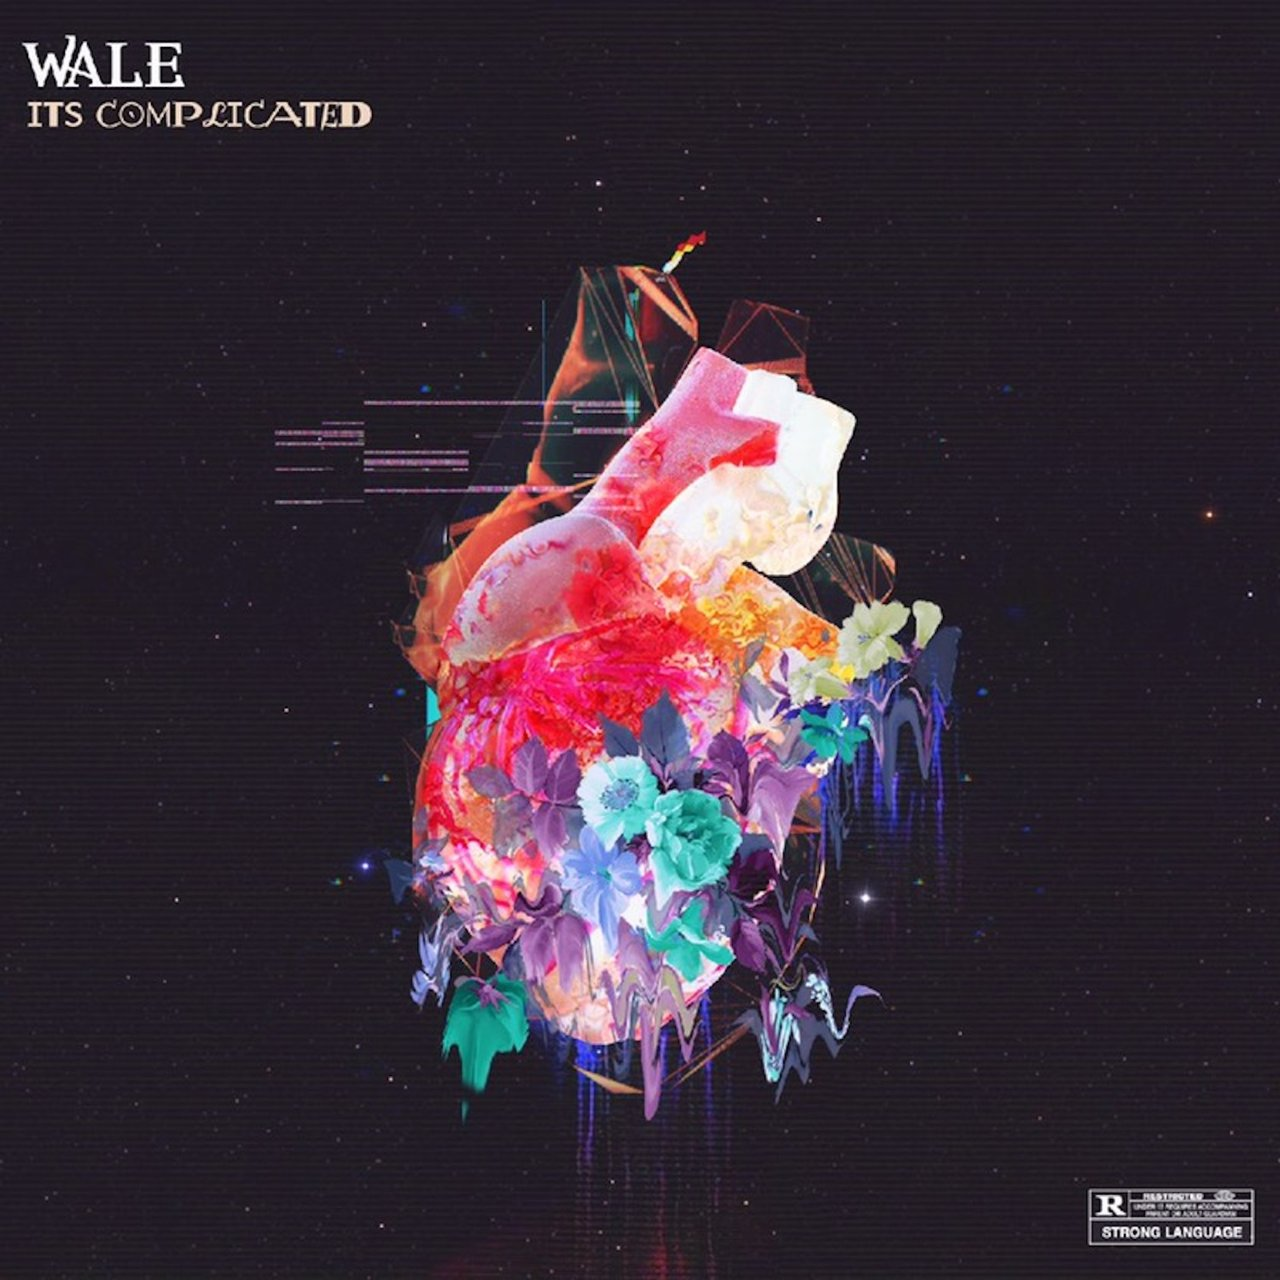 Wale Drops Surprise 'It's Complicated' EP wale its complicated cover